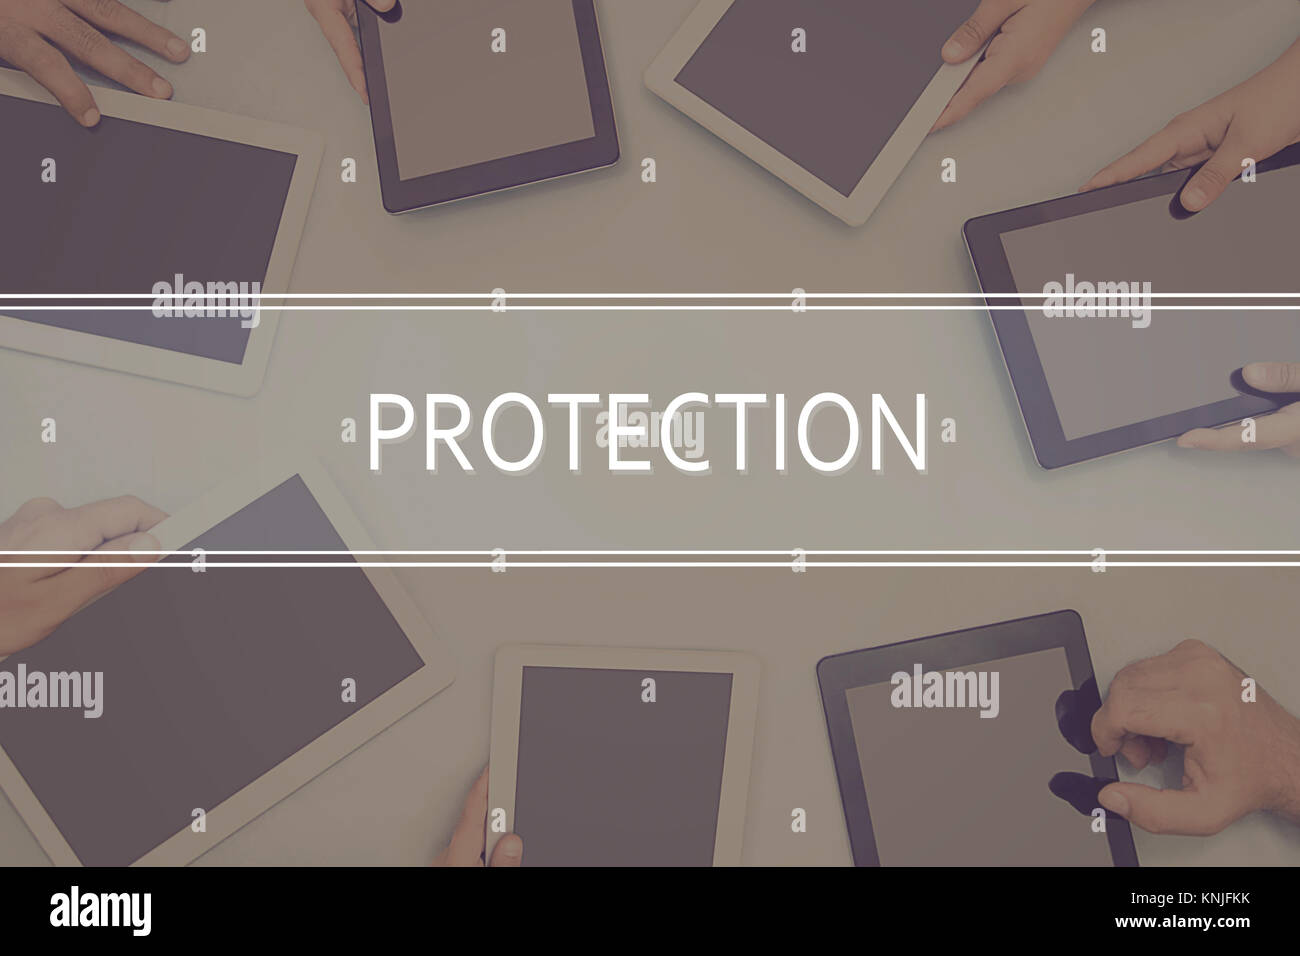 PROTECTION CONCEPT Business Concept. Stock Photo